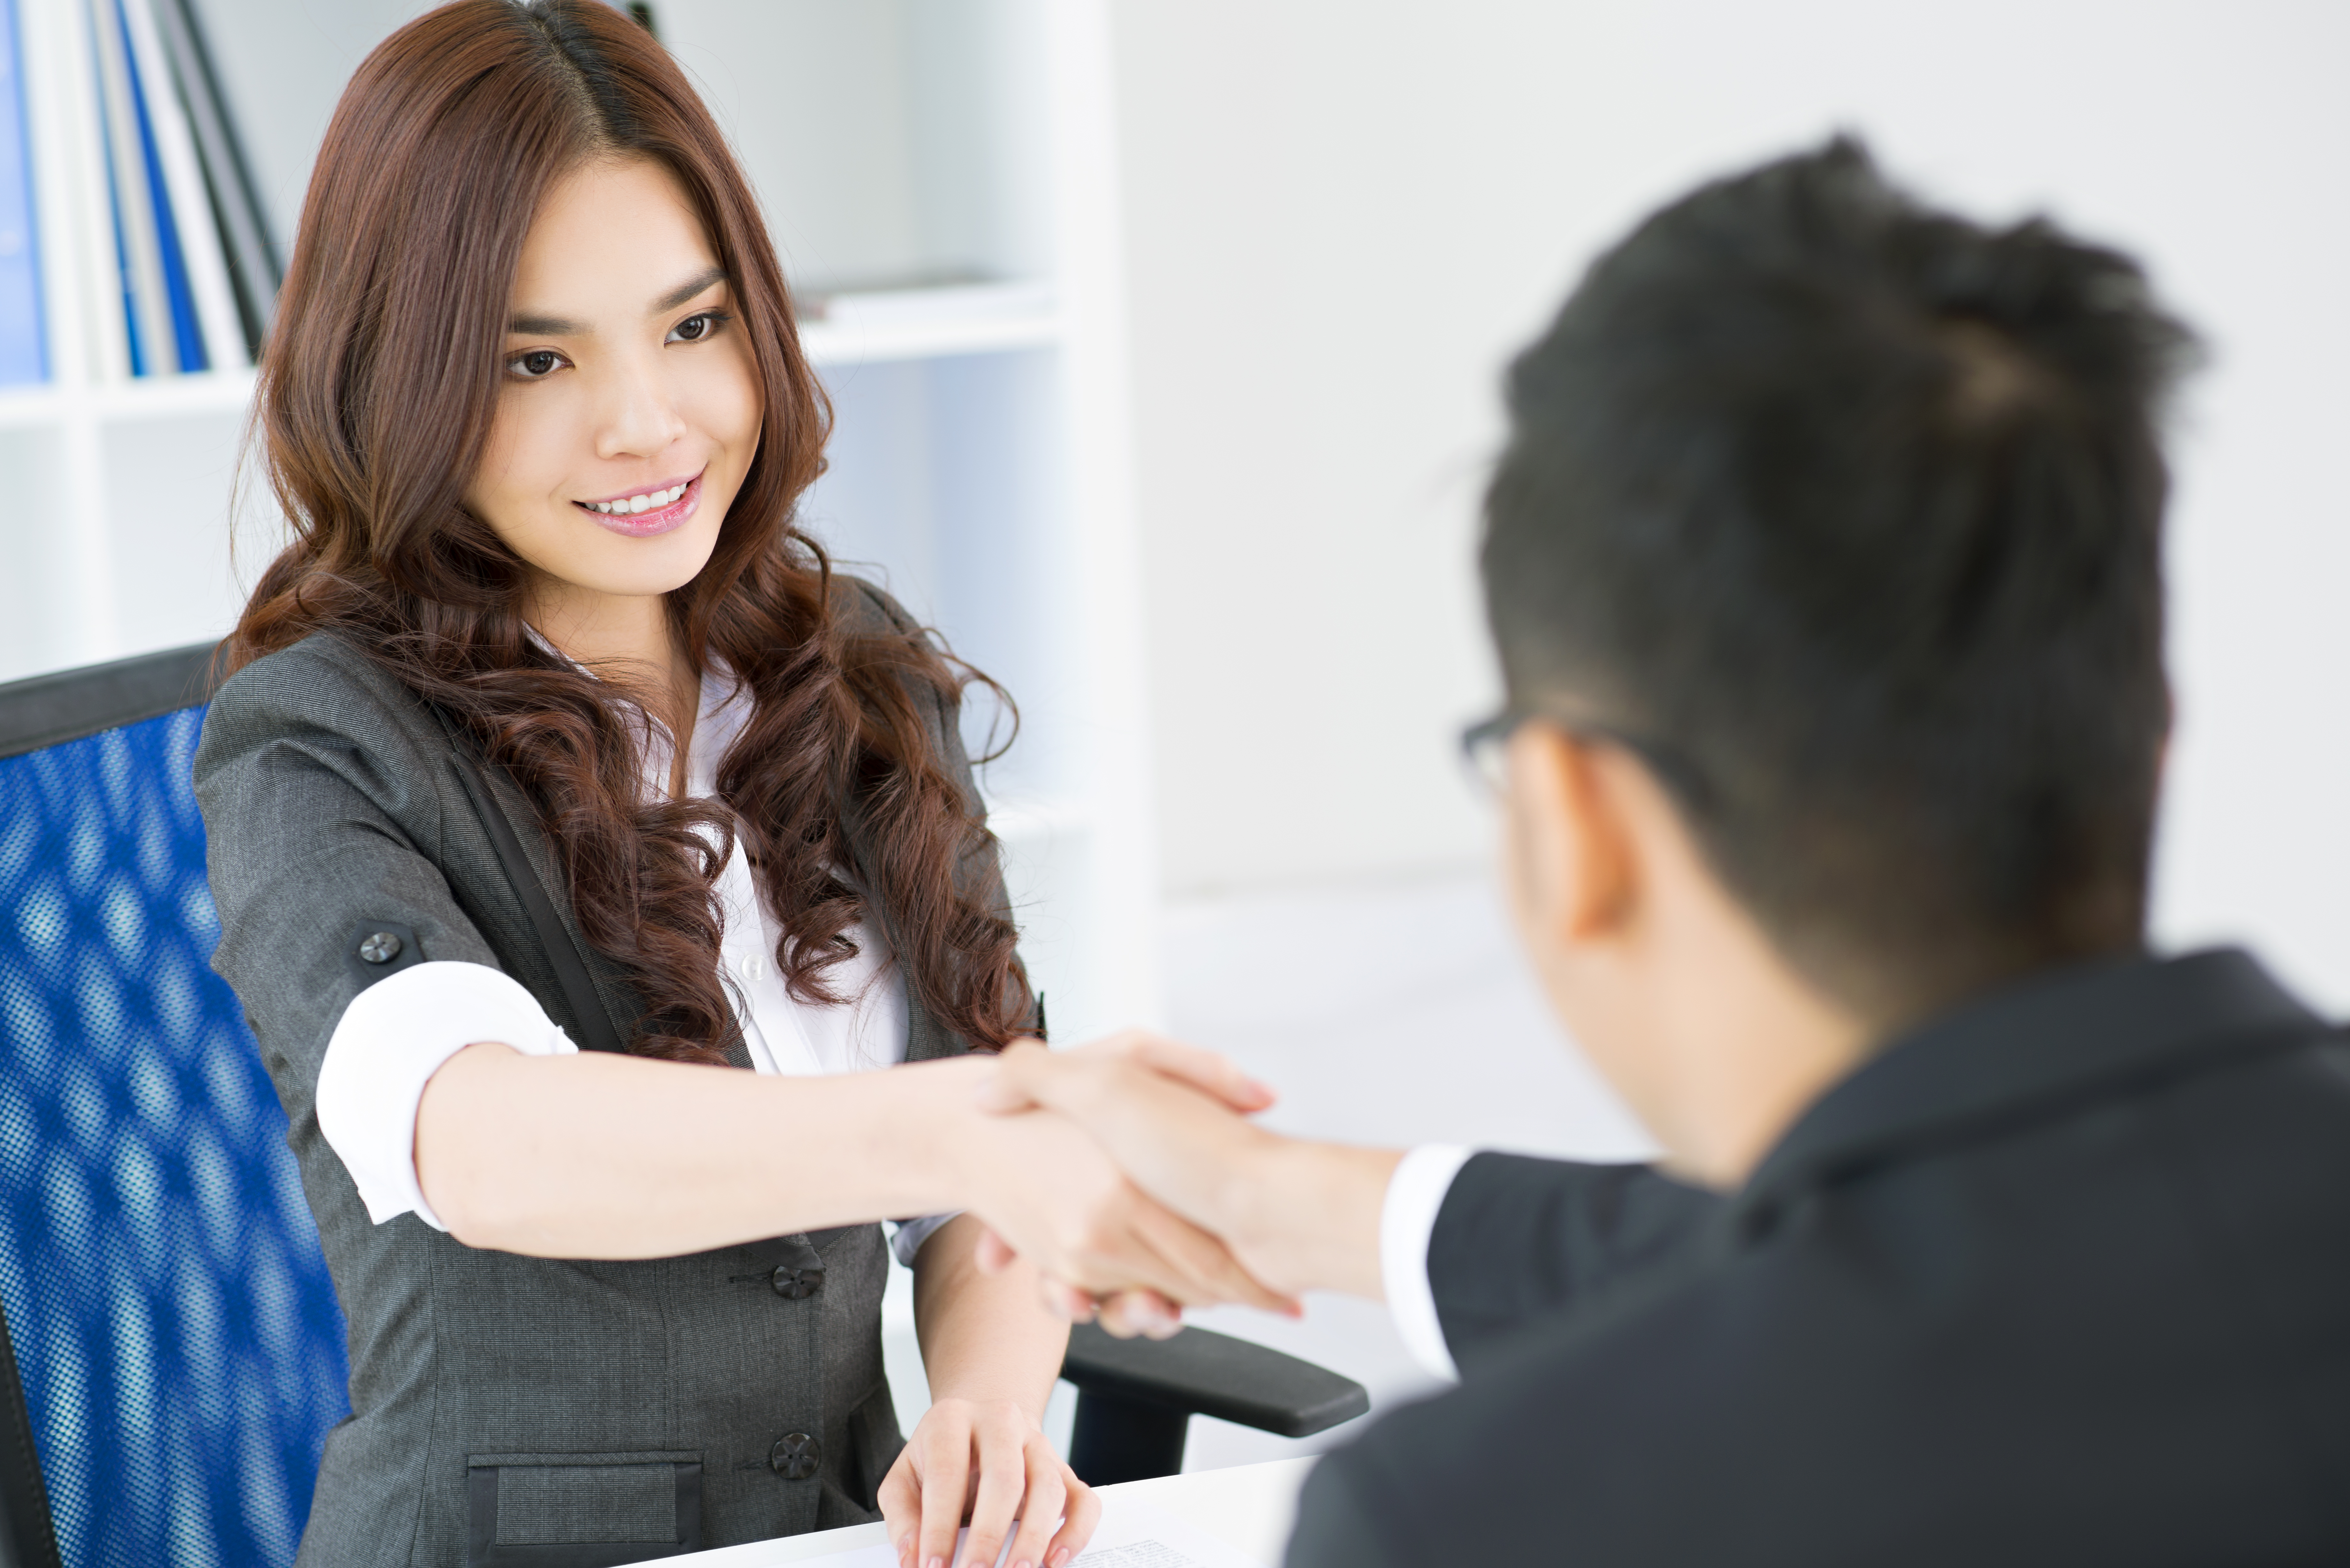 Image of a business woman shaking hands with a man - Respect your town planner he is a great asset to help you obtain development approval